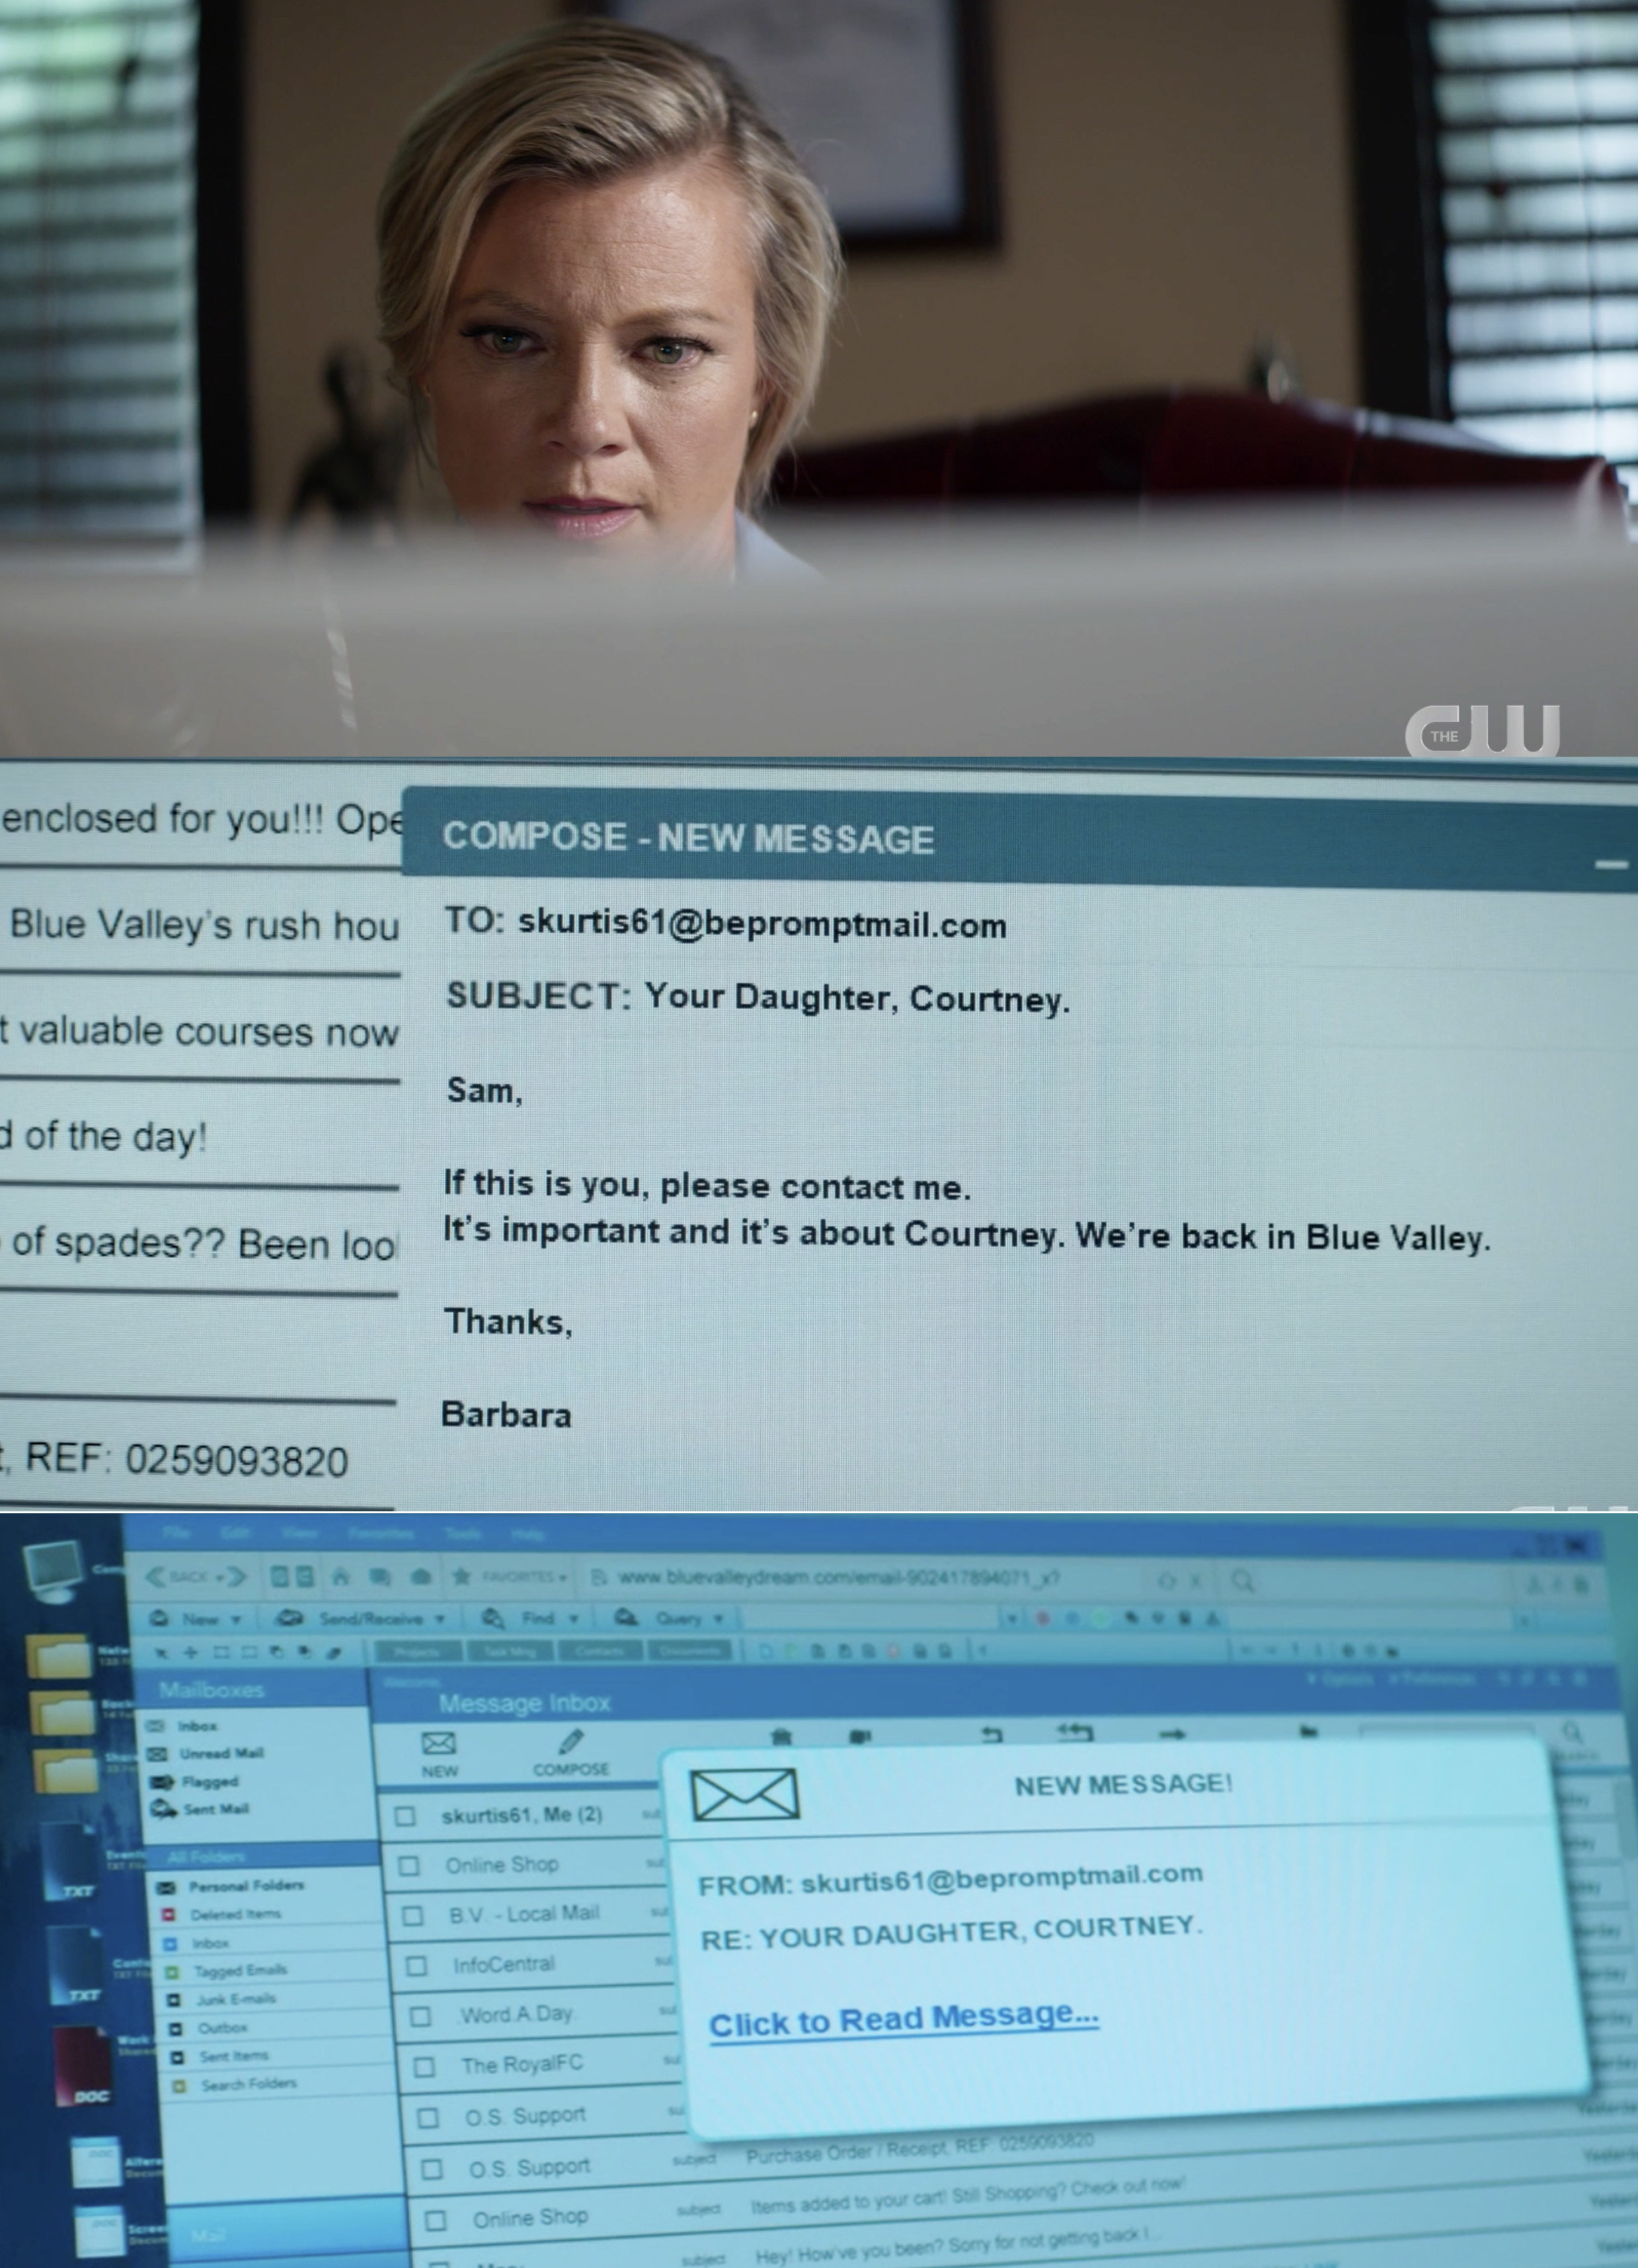 Barbara sending an email to Courtney's supposed dad saying they need to talk and that they are in Blue Valley again